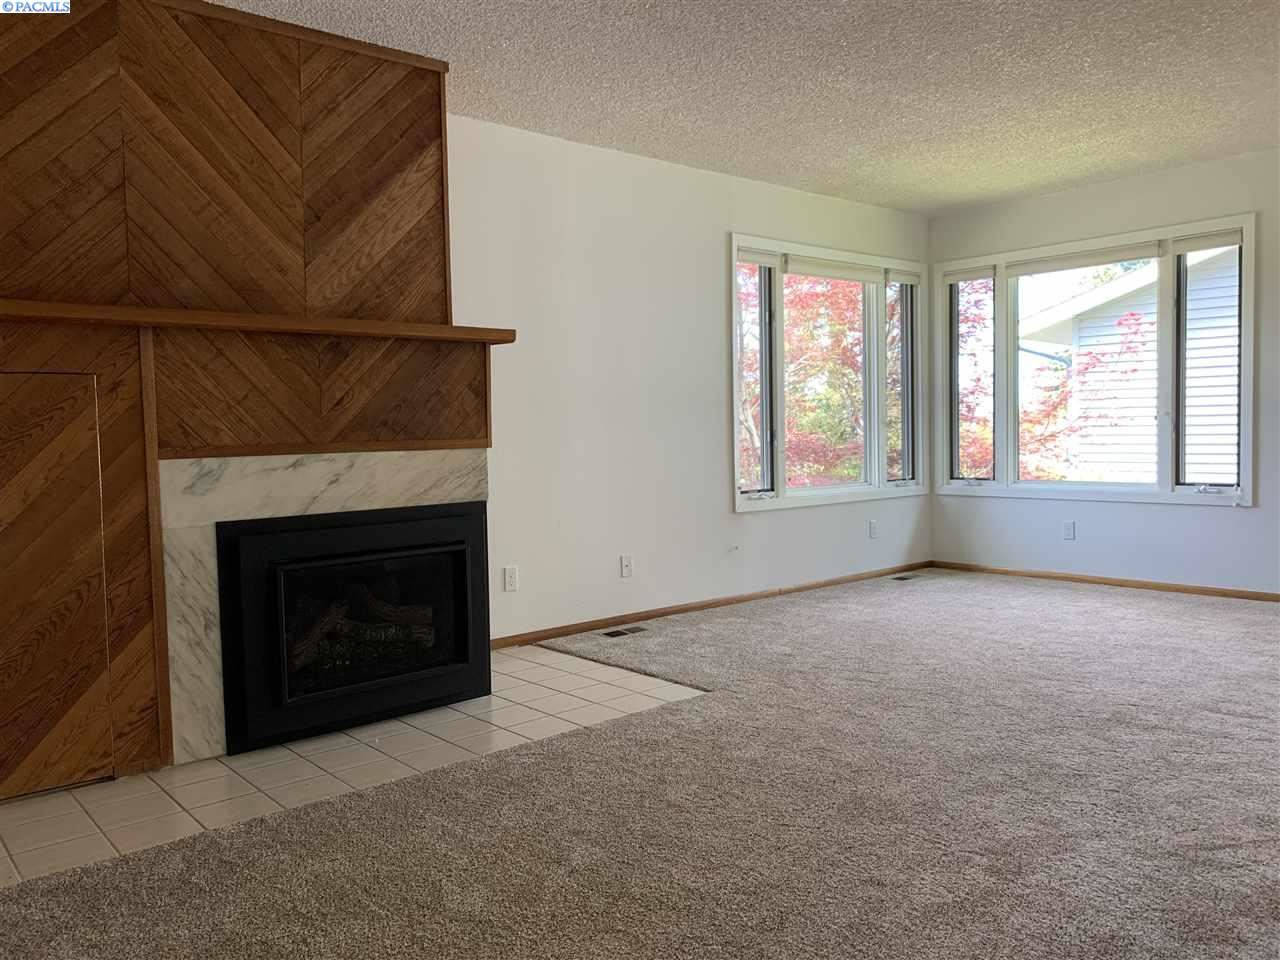 Photo of 705 SW Mies St., Pullman, WA 99163 (MLS # 245301)